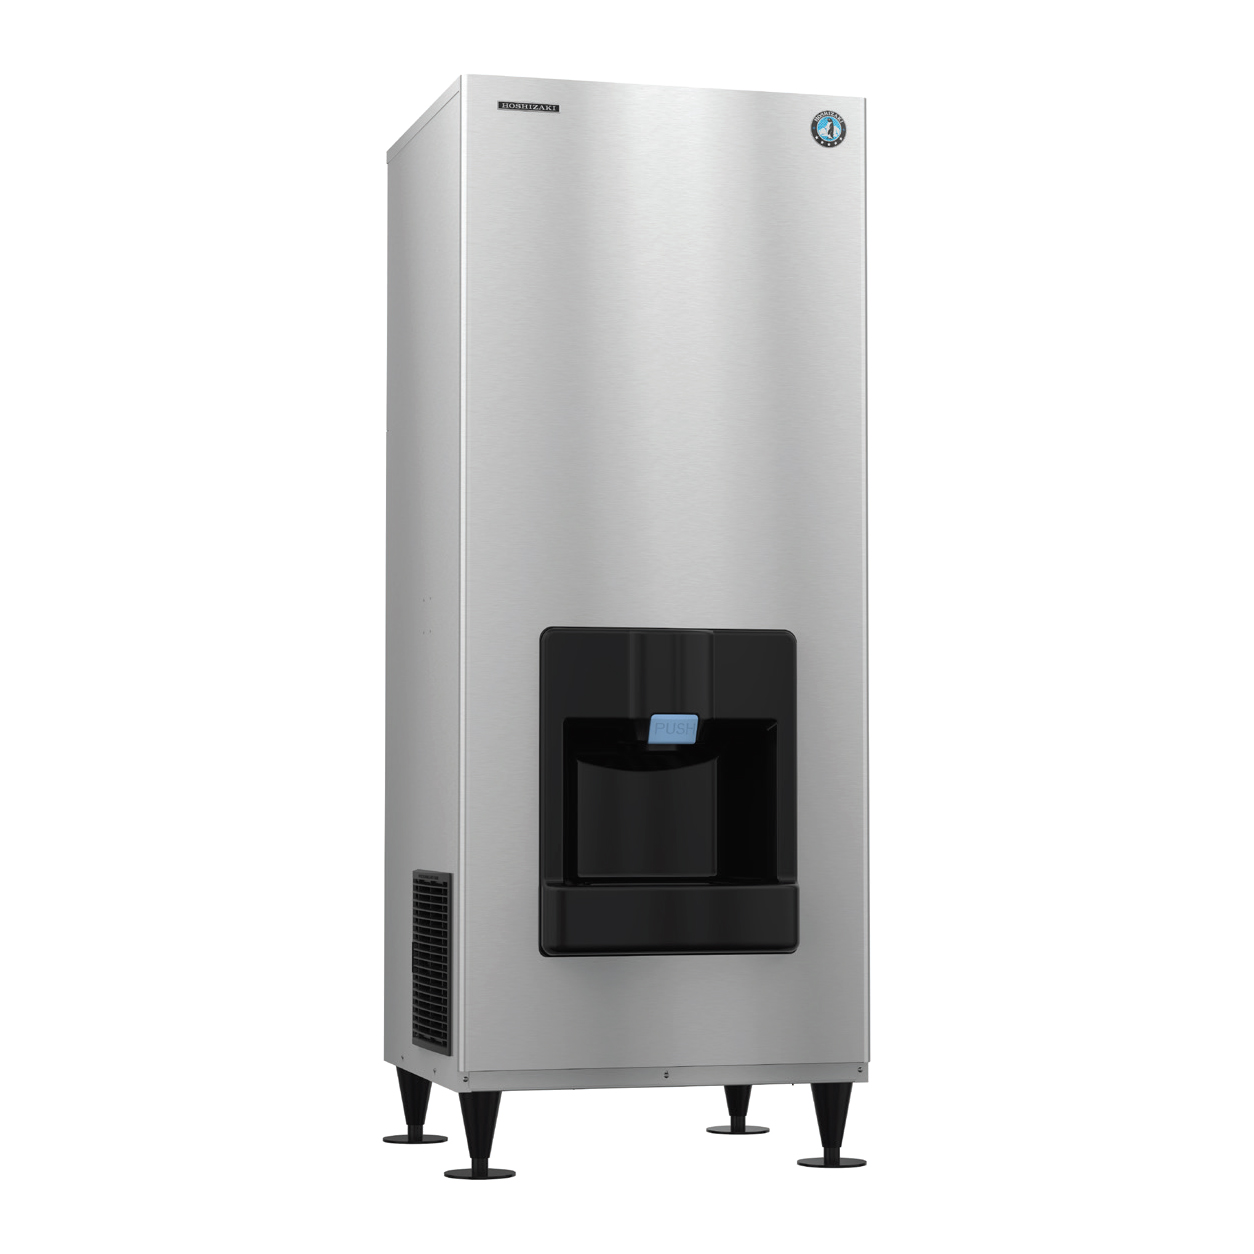 Hoshizaki DKM-500BAJ ice cubers, ice storage & ice dispensers